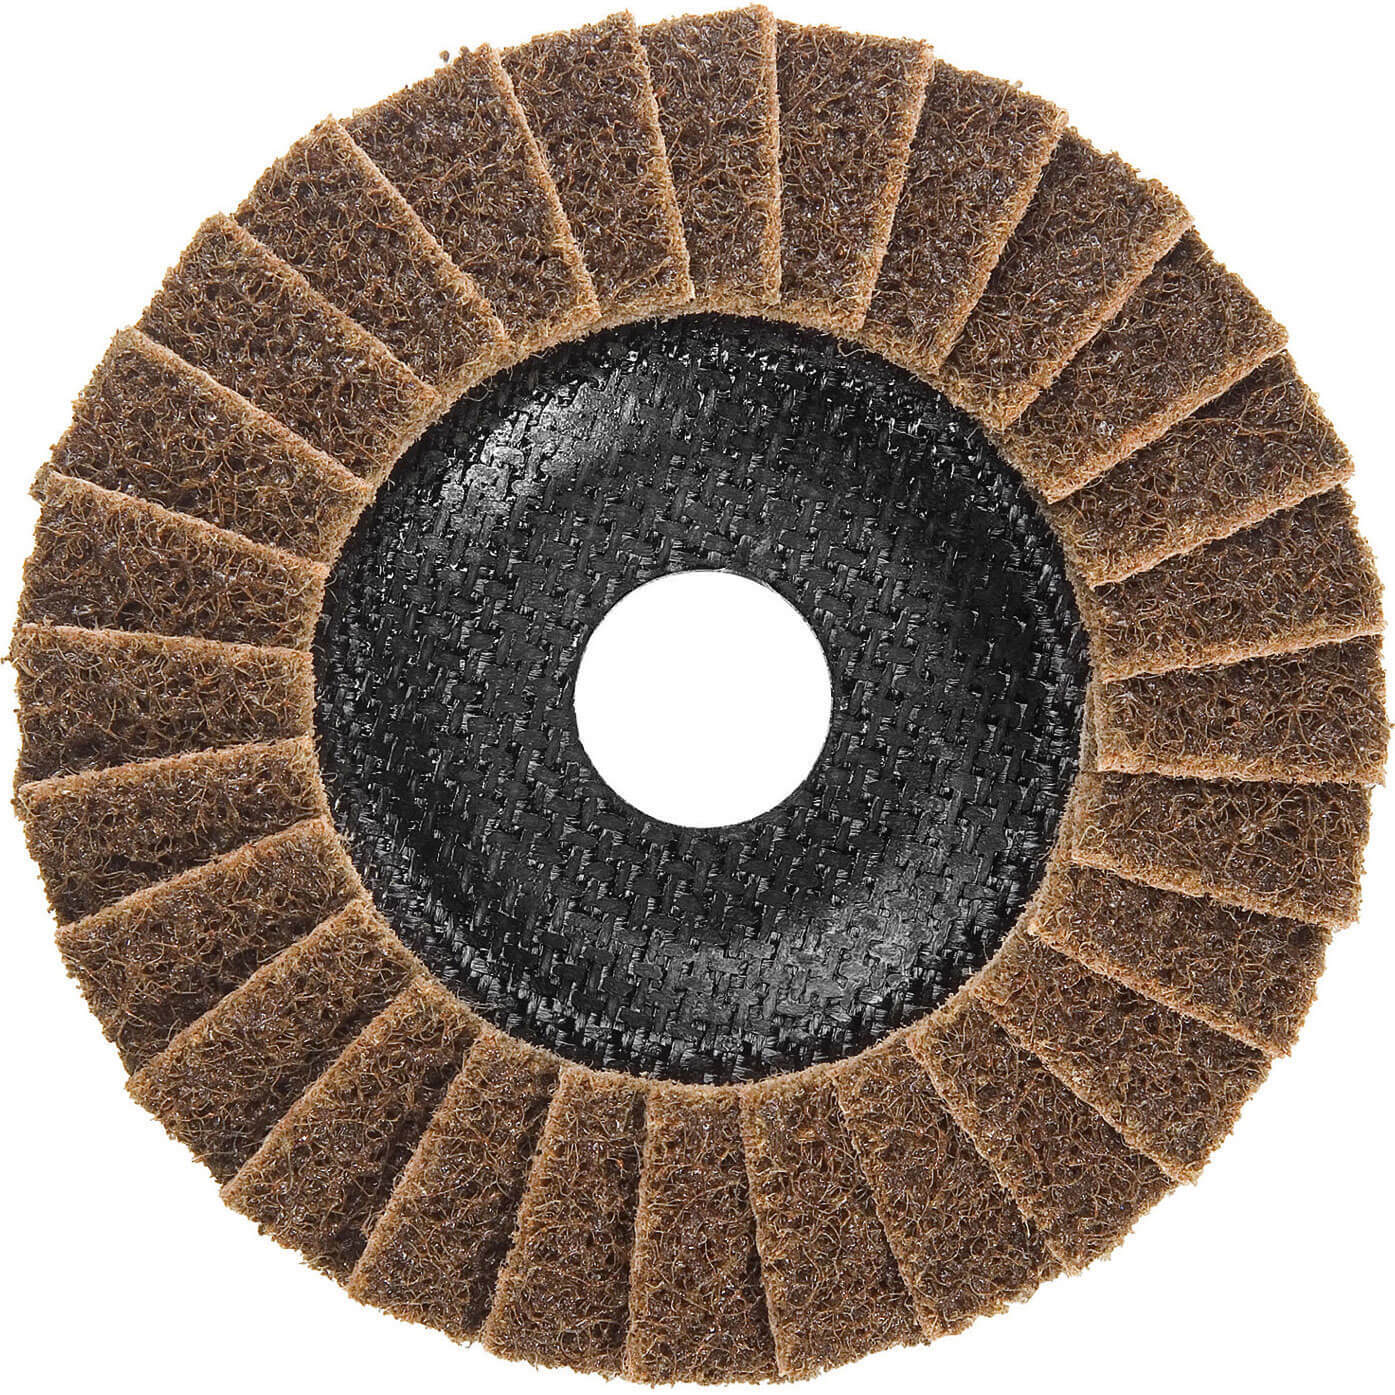 Dronco G-VA 115mm Angle Grinder Polishing Flap Disc Coarse for Metal